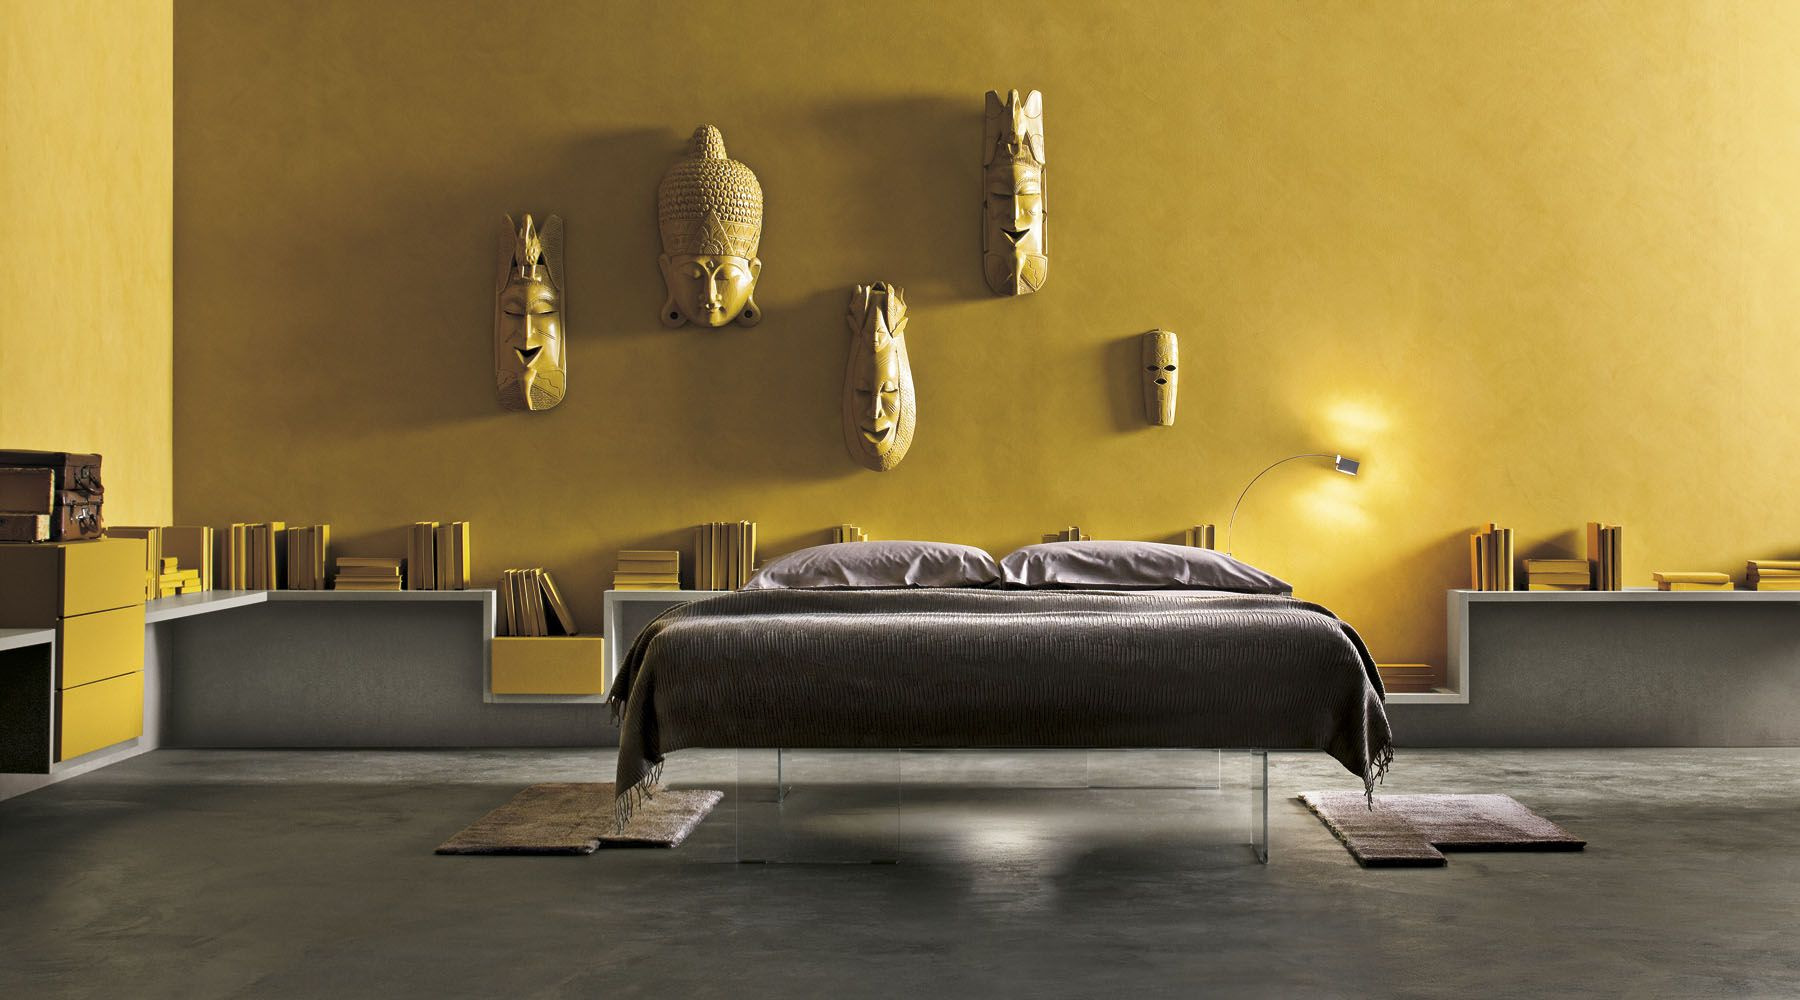 NATURAL WALL PAINTING - Design furnishing by Lago | interior ...